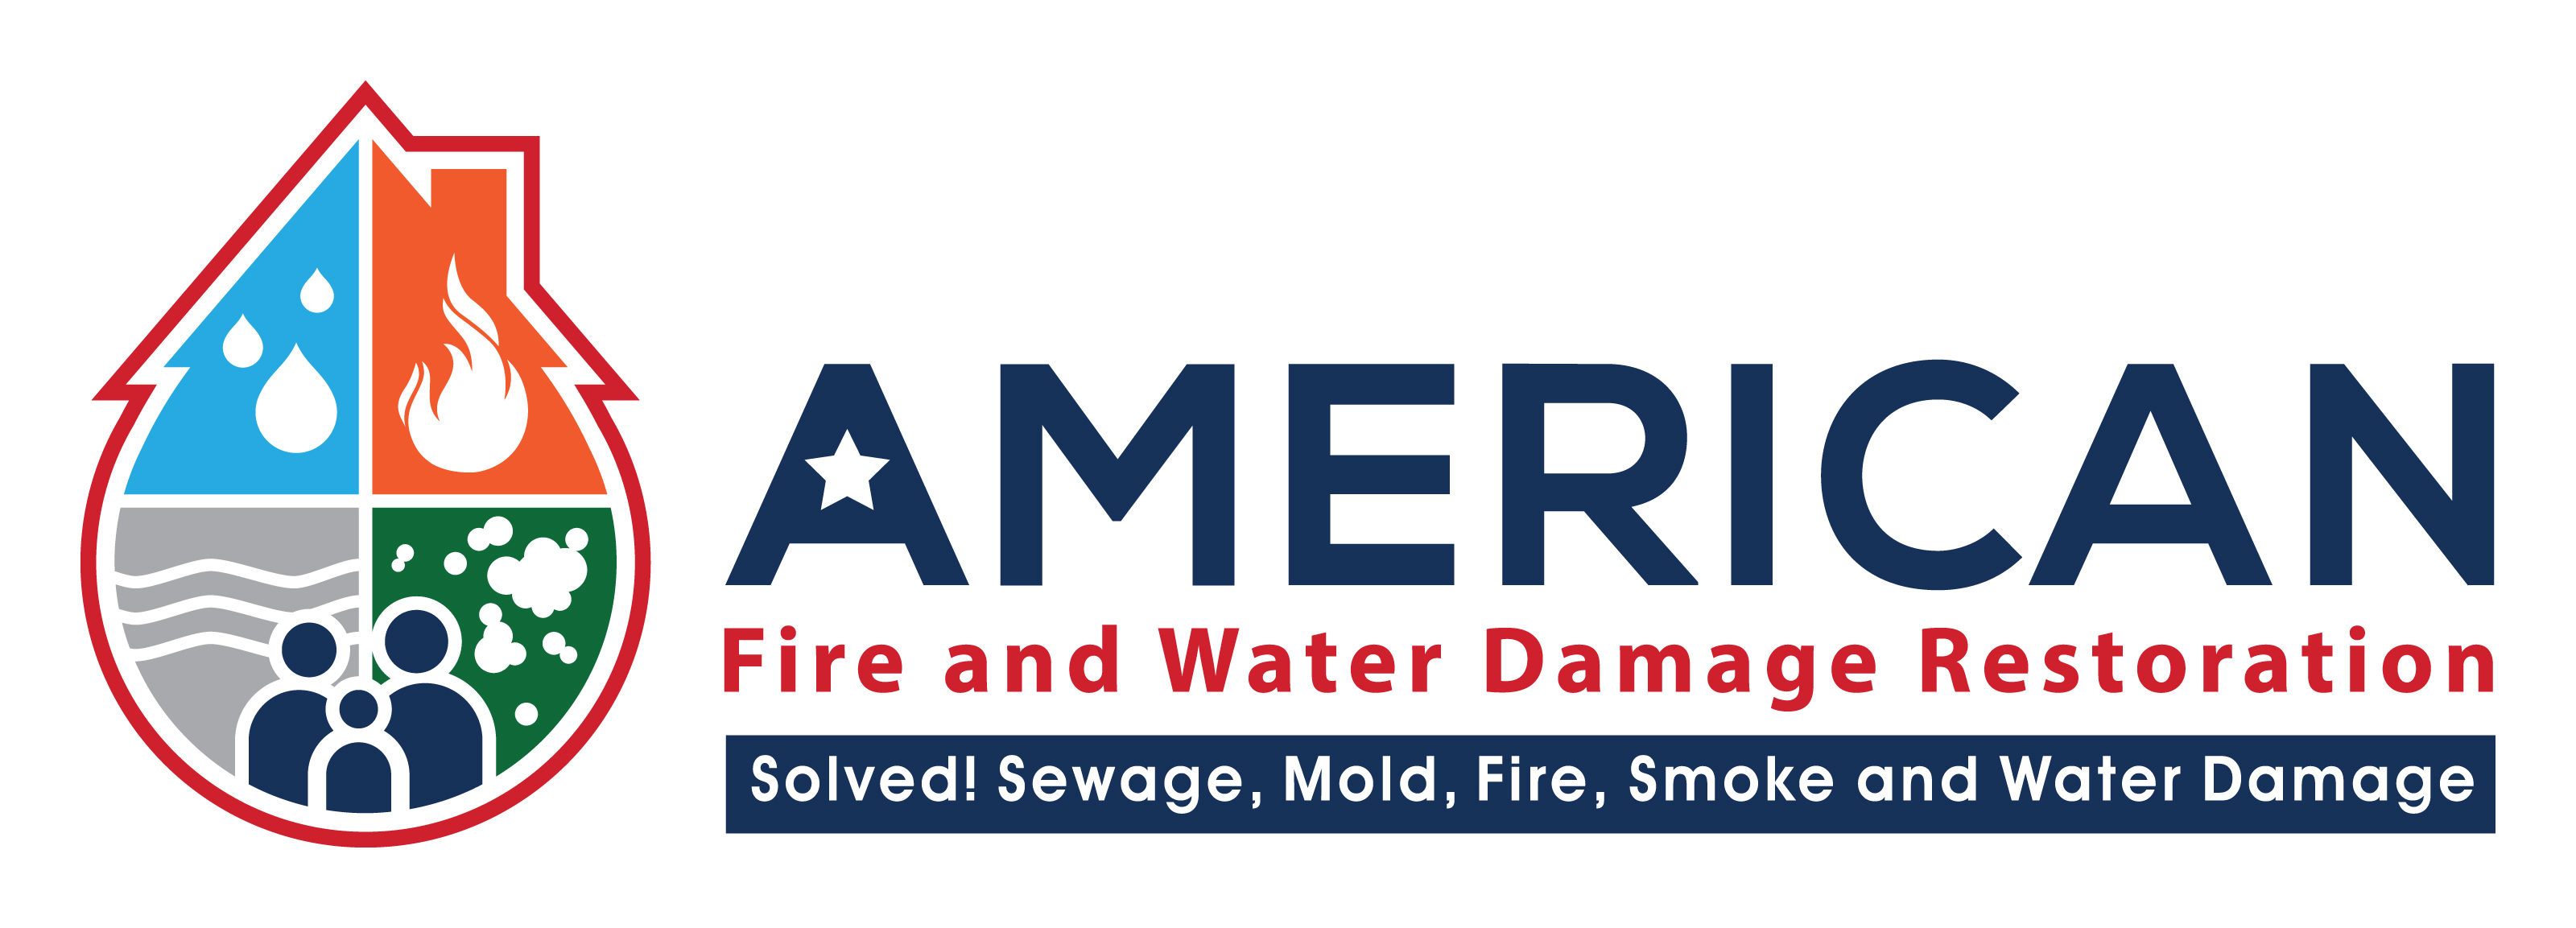 American Fire and Water Damage Restoration